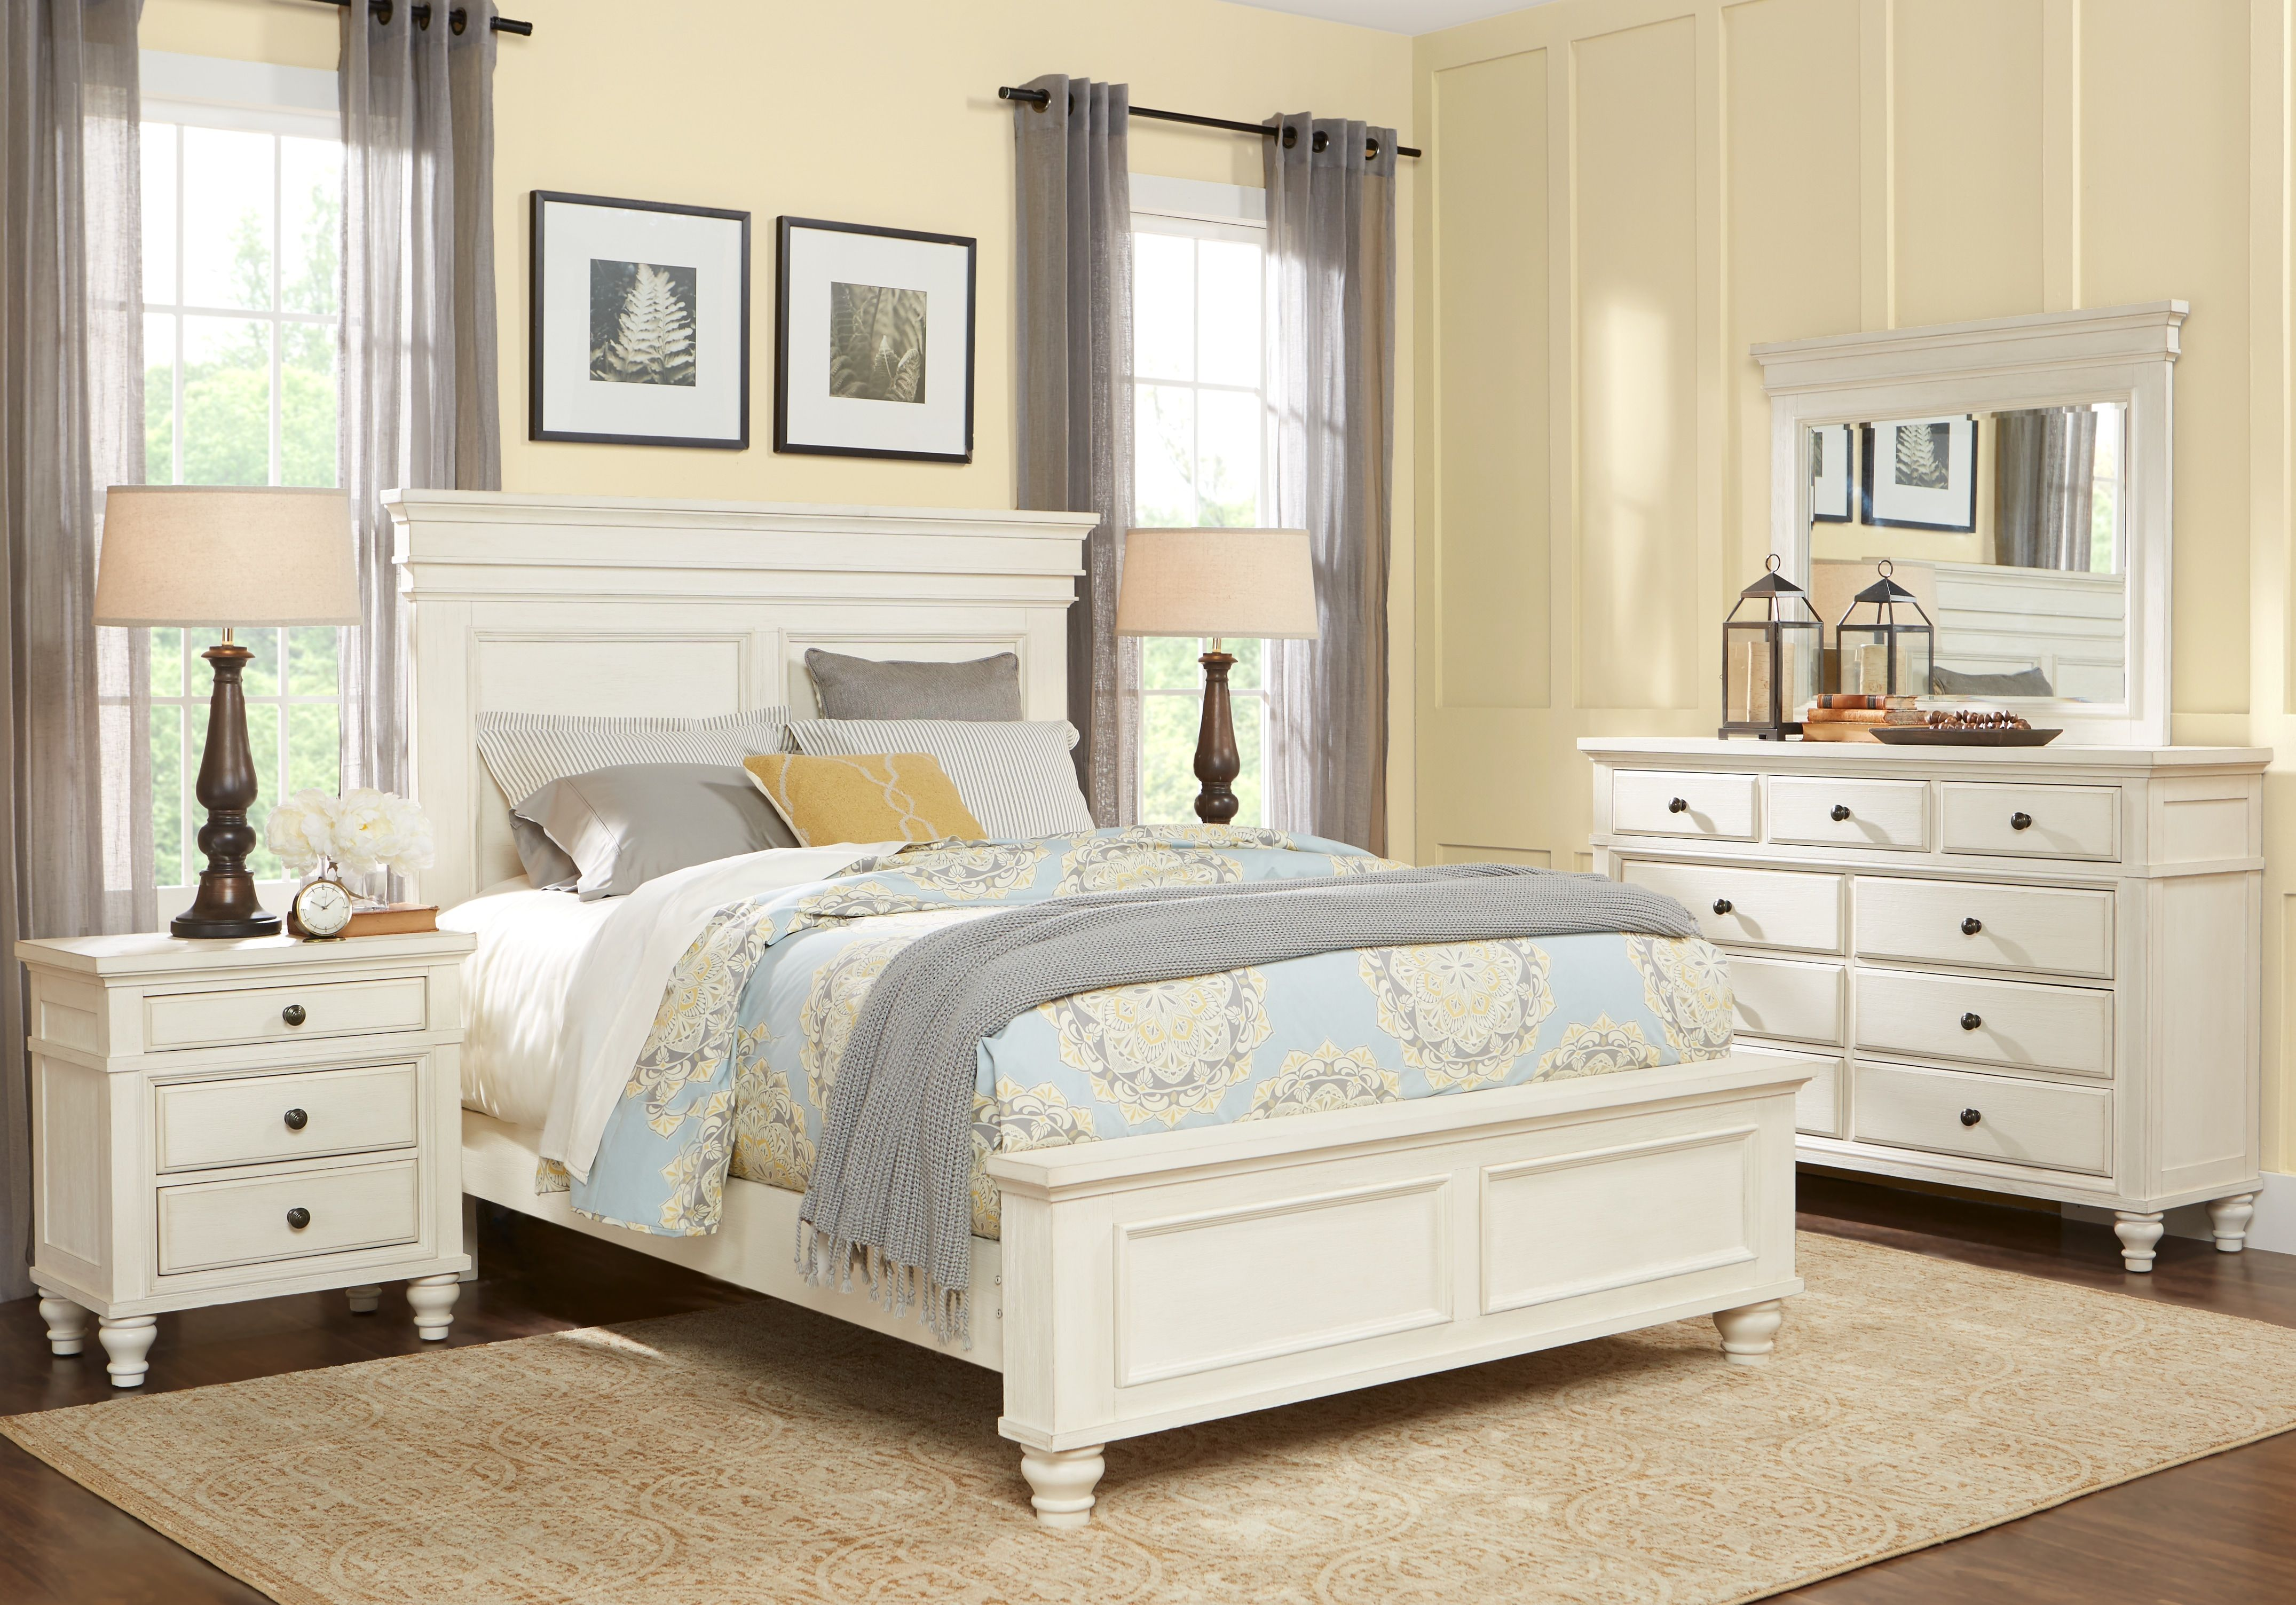 Lake Town Off-White 7 Pc Queen Panel Bedroom | King bedroom ...